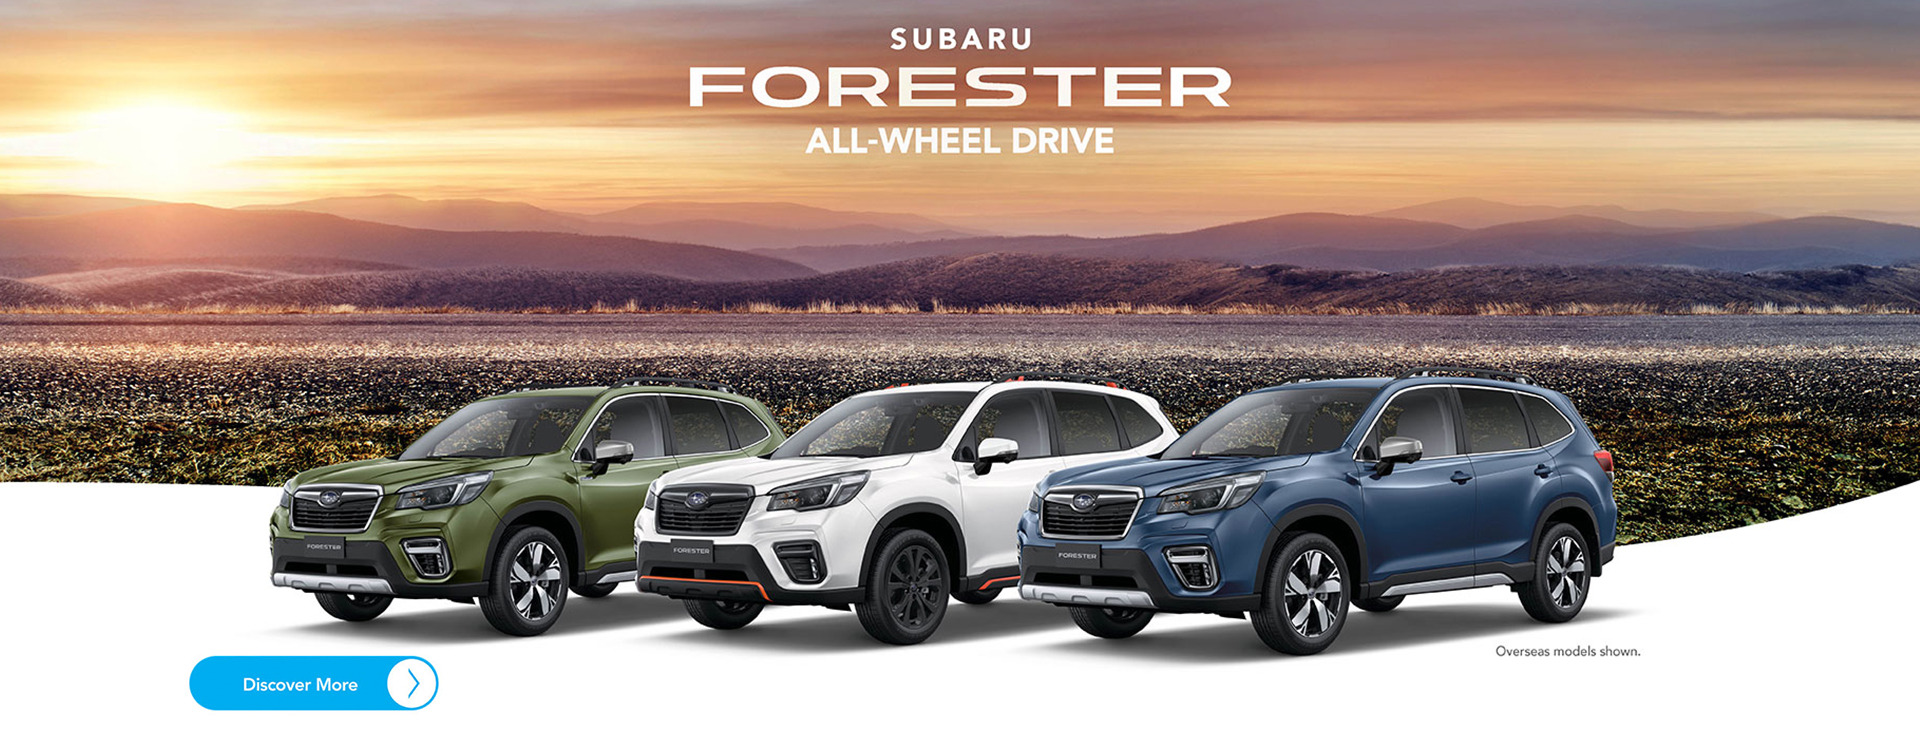 New Subaru Forester, including Hybrid e-Boxer, now available at Cricks Subaru, Sunshine Coast. Test Drive Today!